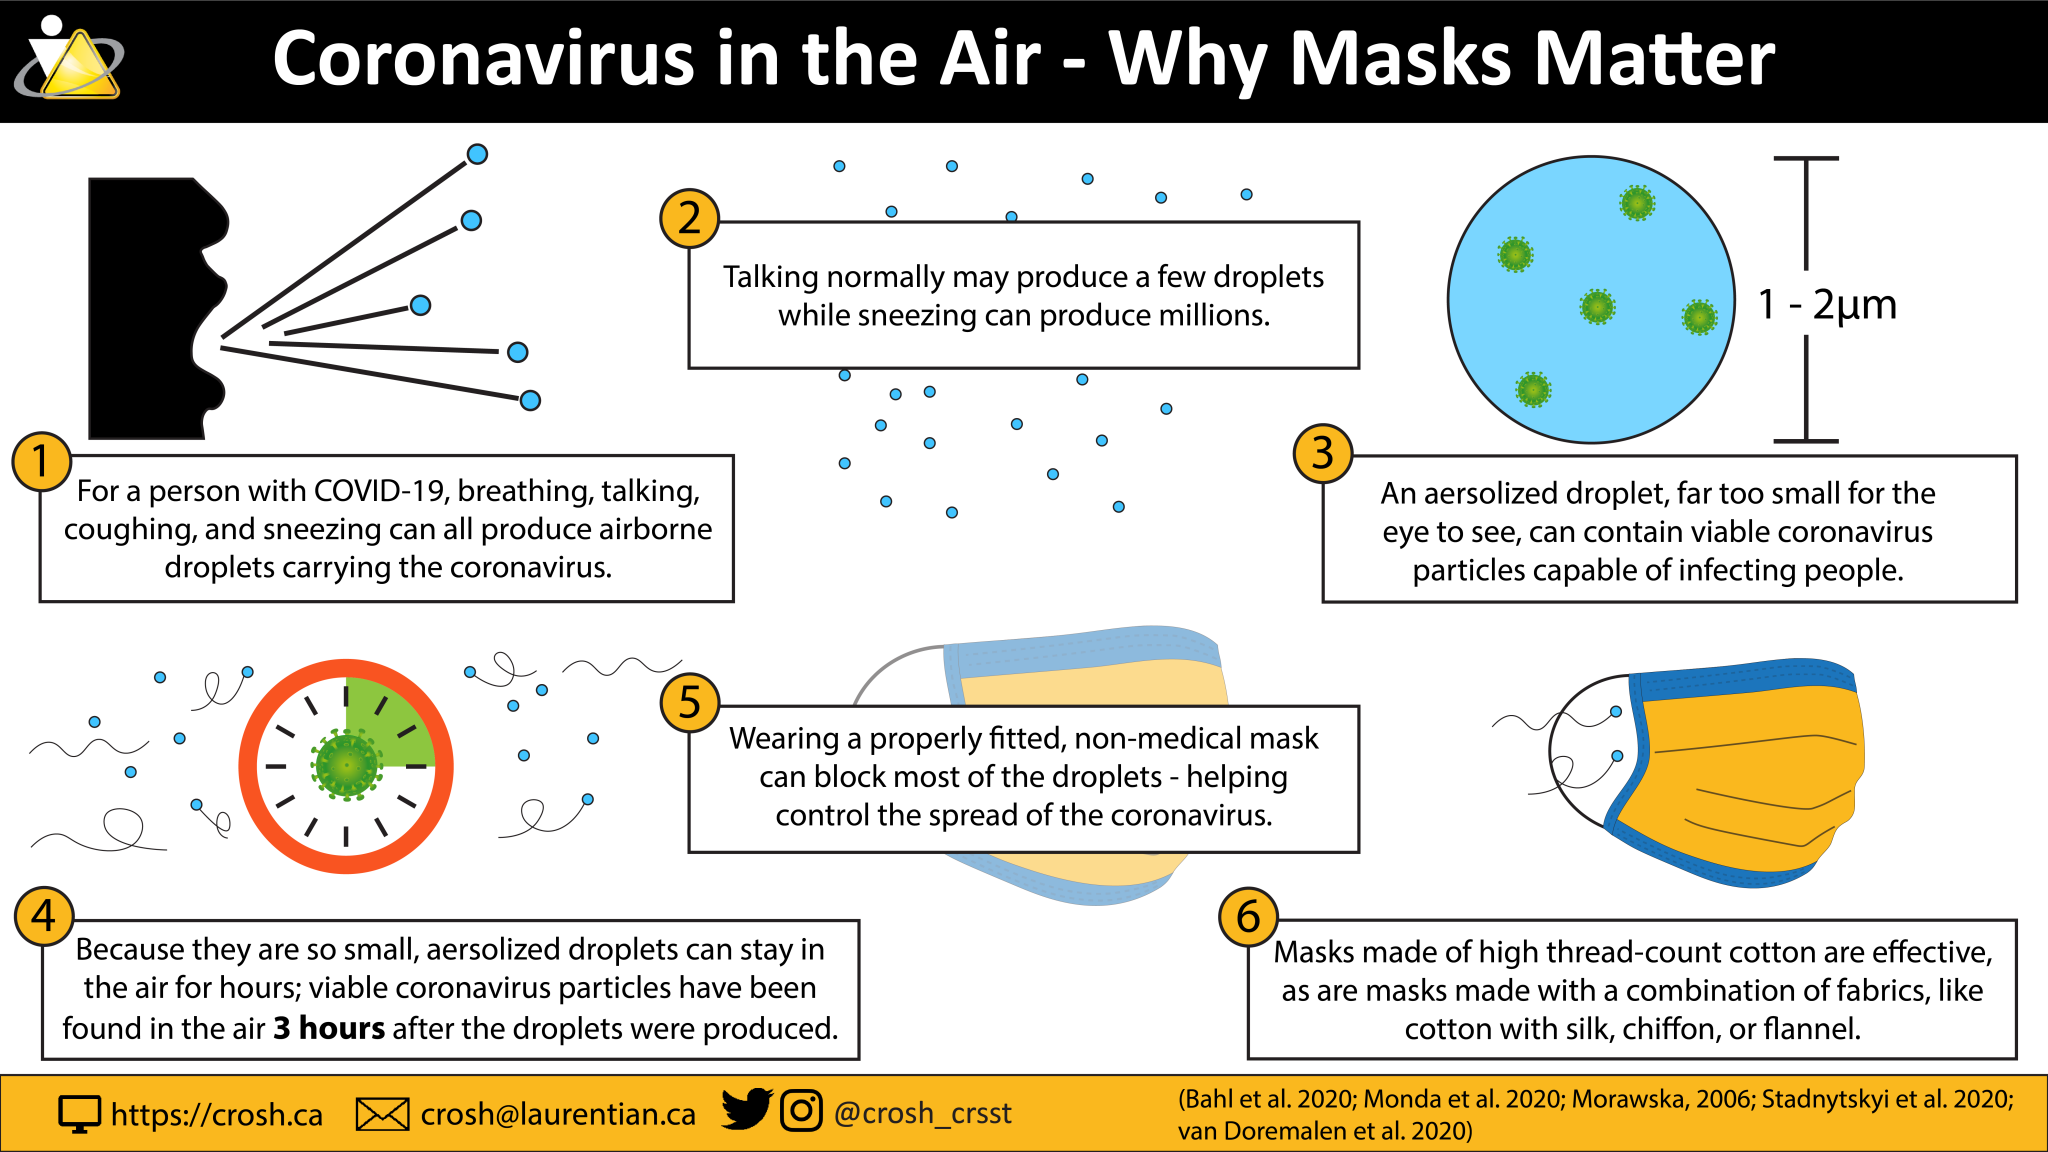 infographic of why masks are important for controlling the spread of the coronavirus